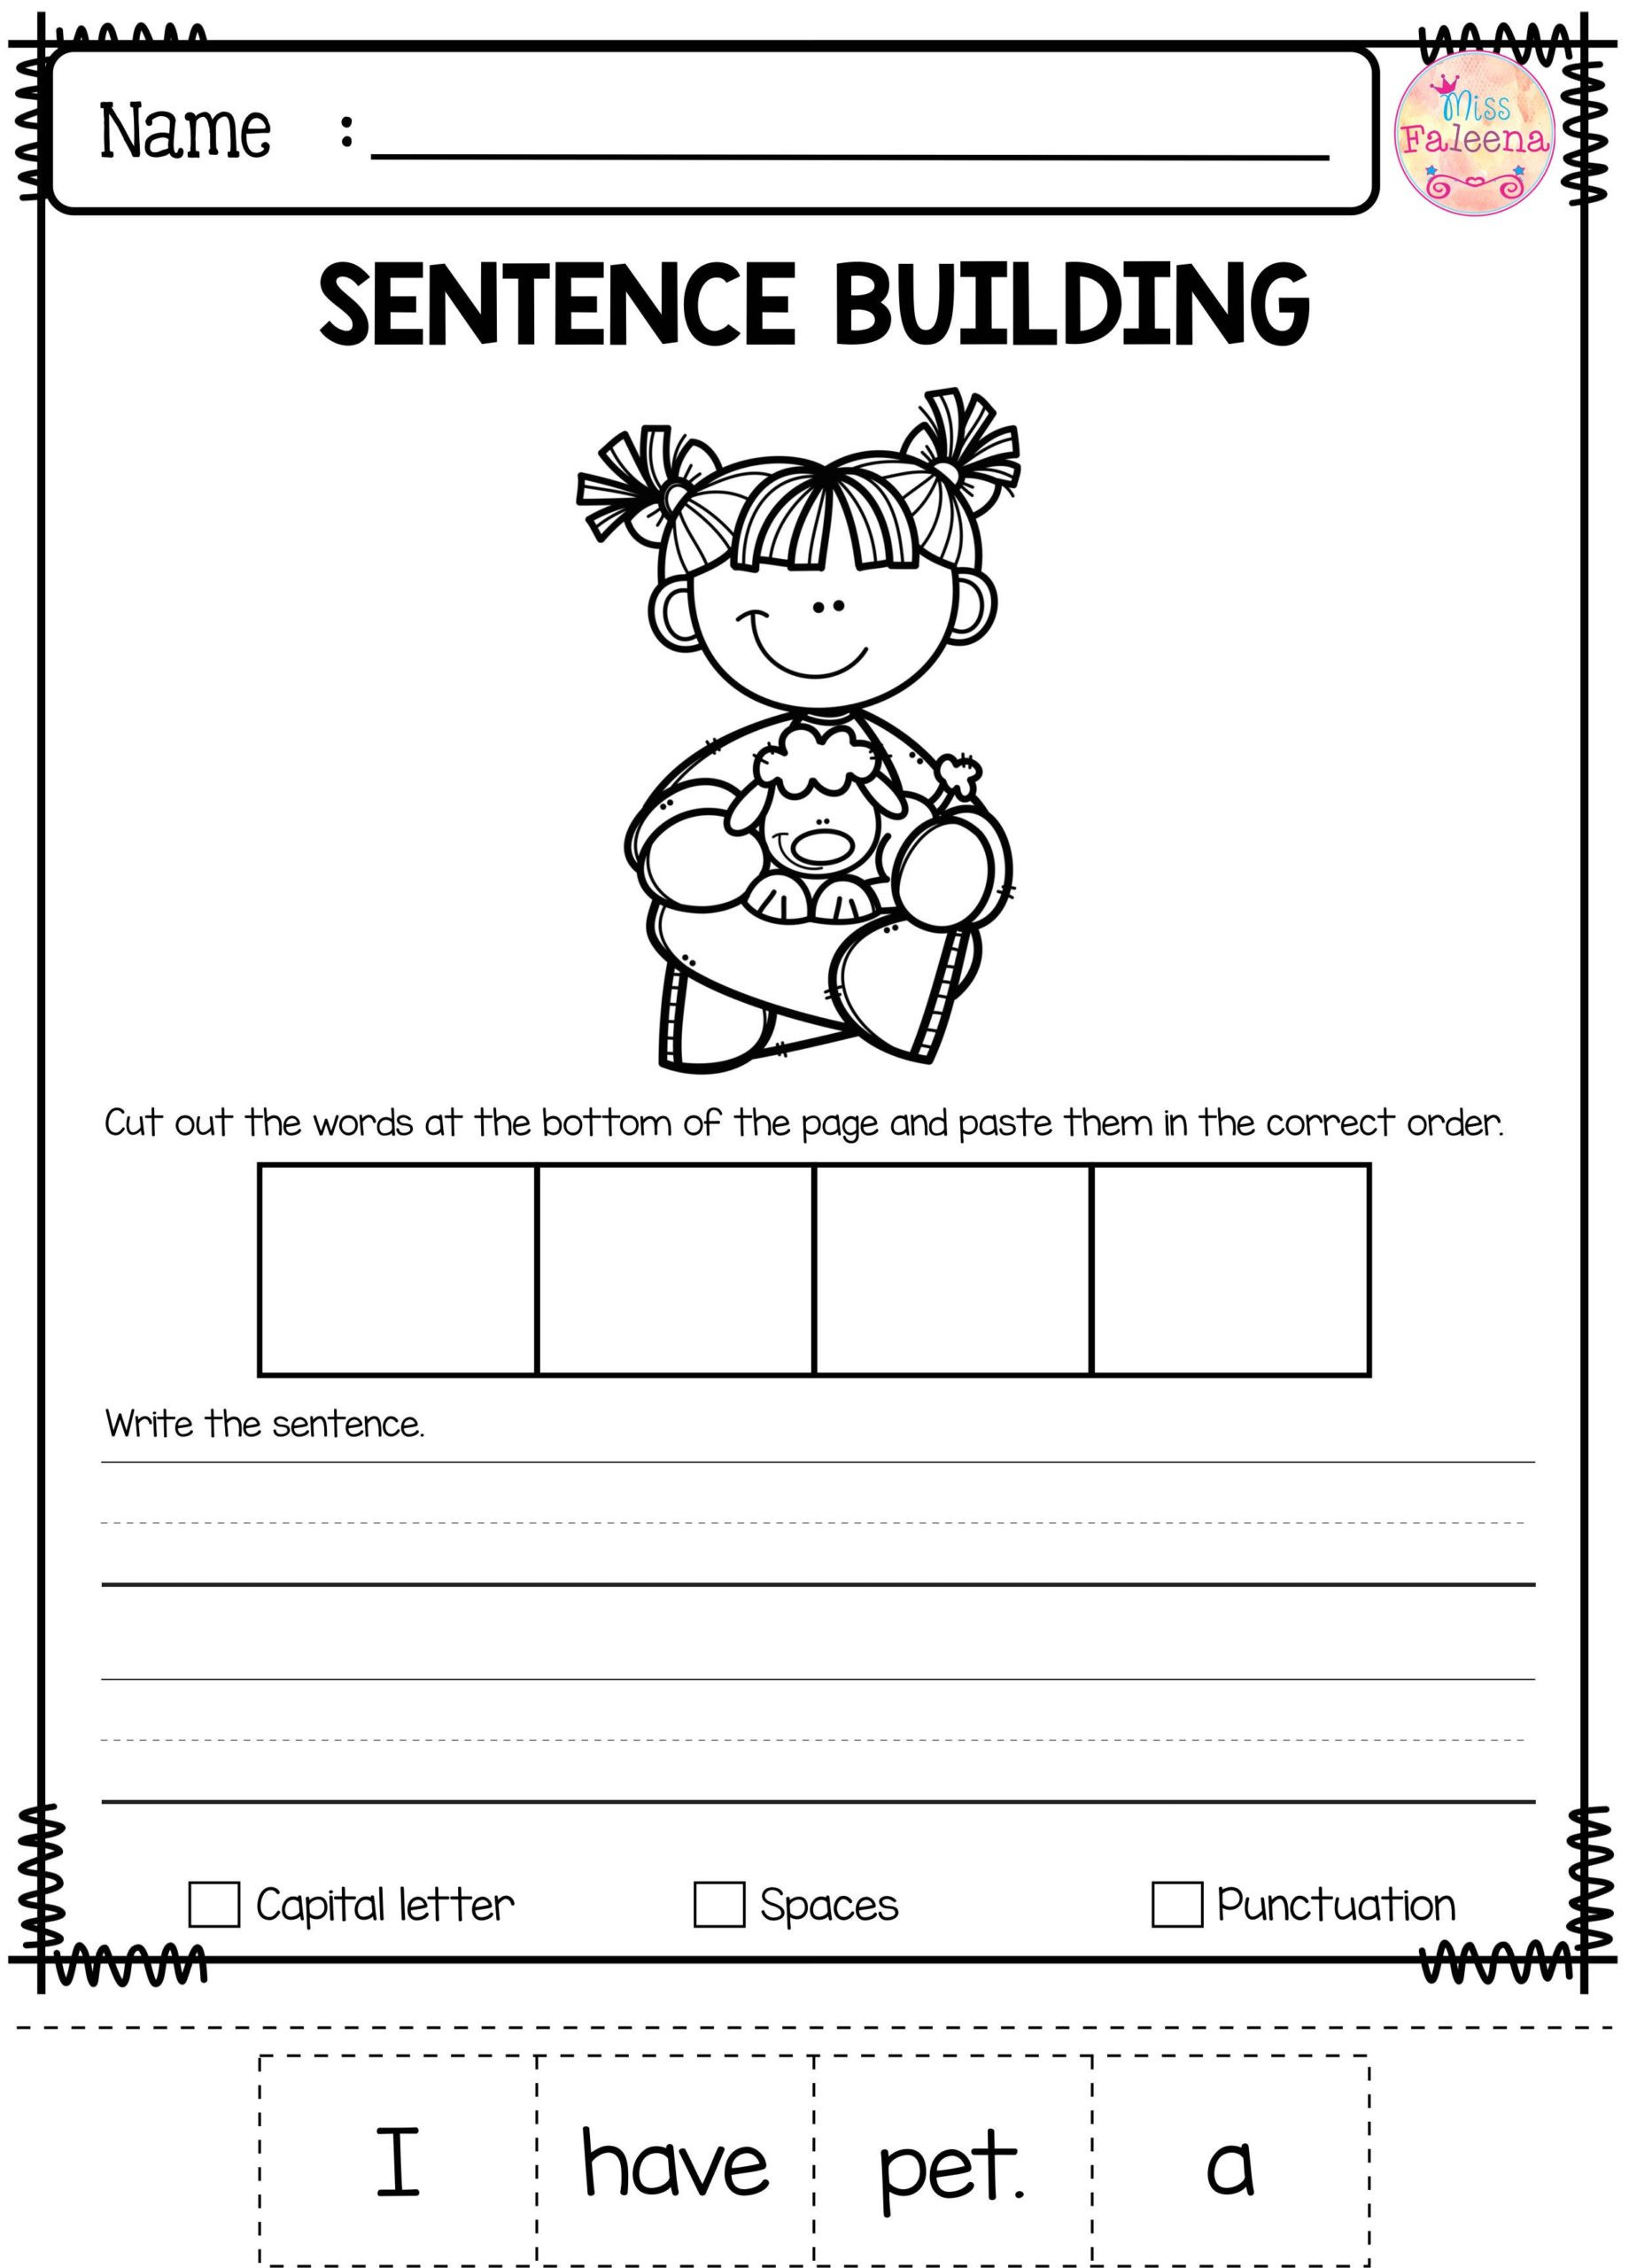 Worksheets for First Grade Writing 2nd Grade Kindergarden School Paring Objects Worksheets